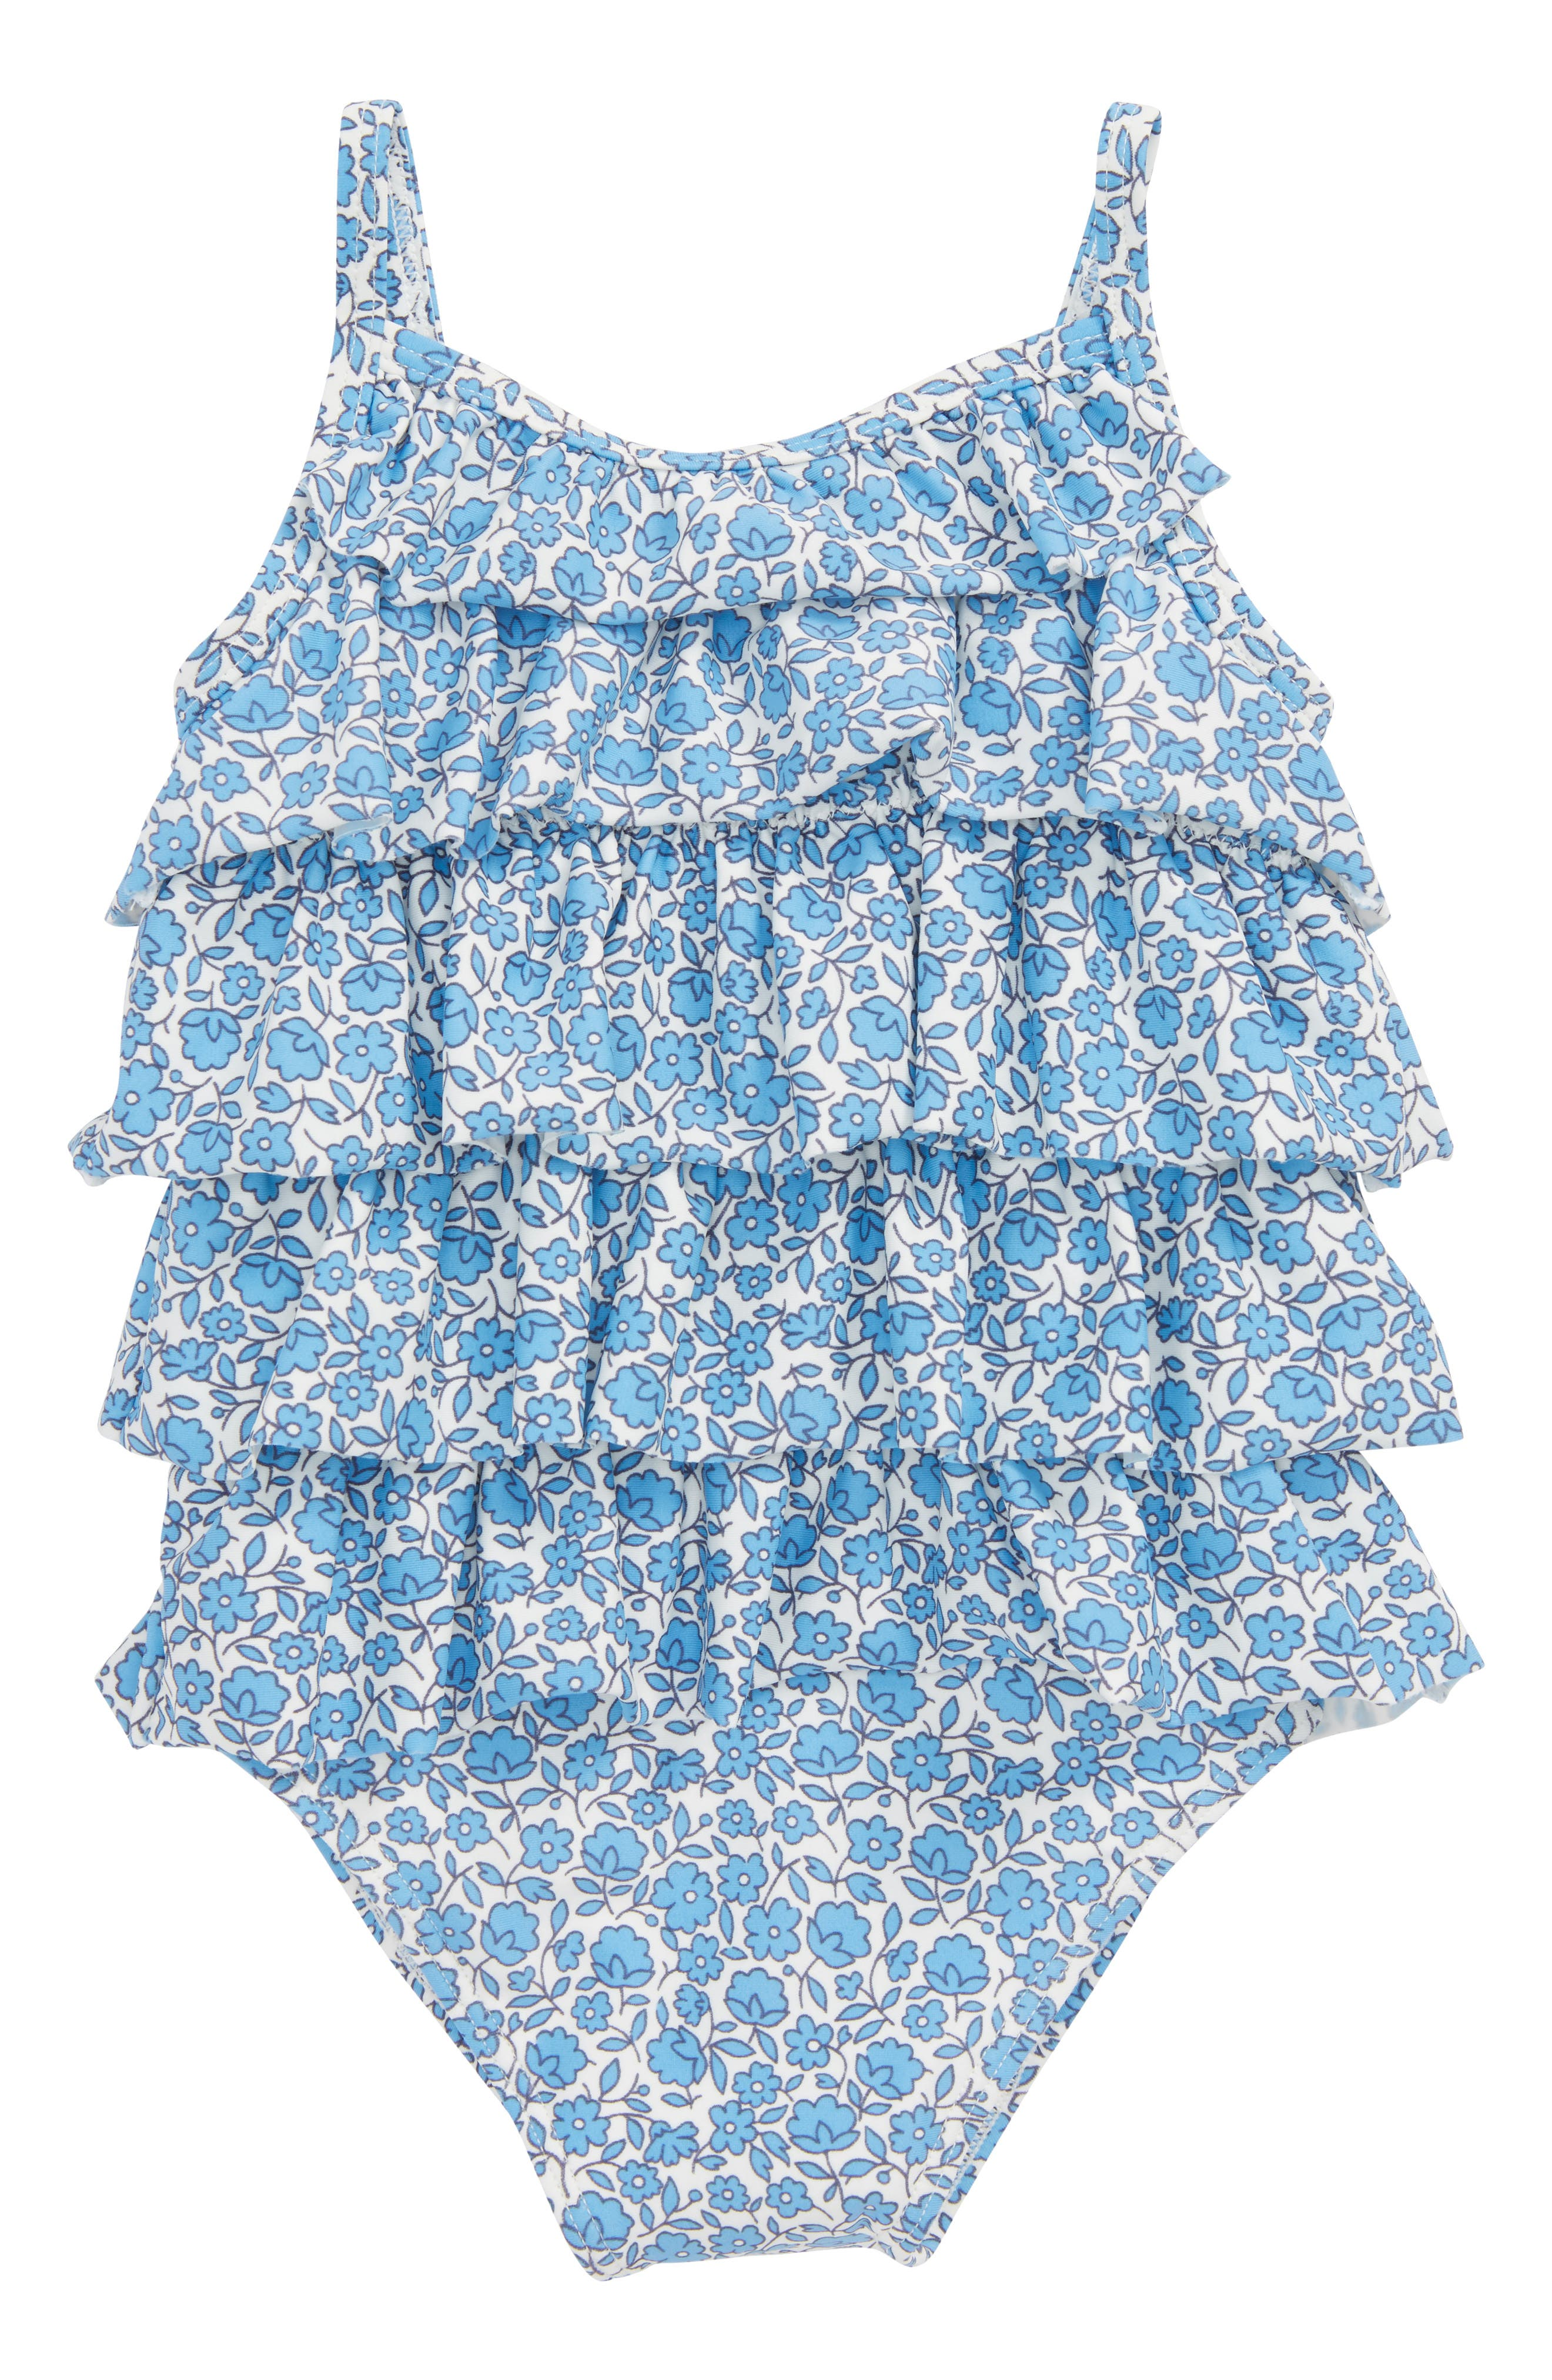 Summer Ruffle One-Piece Swimsuit,                             Main thumbnail 1, color,                             Lake Blue/ Floral Toile